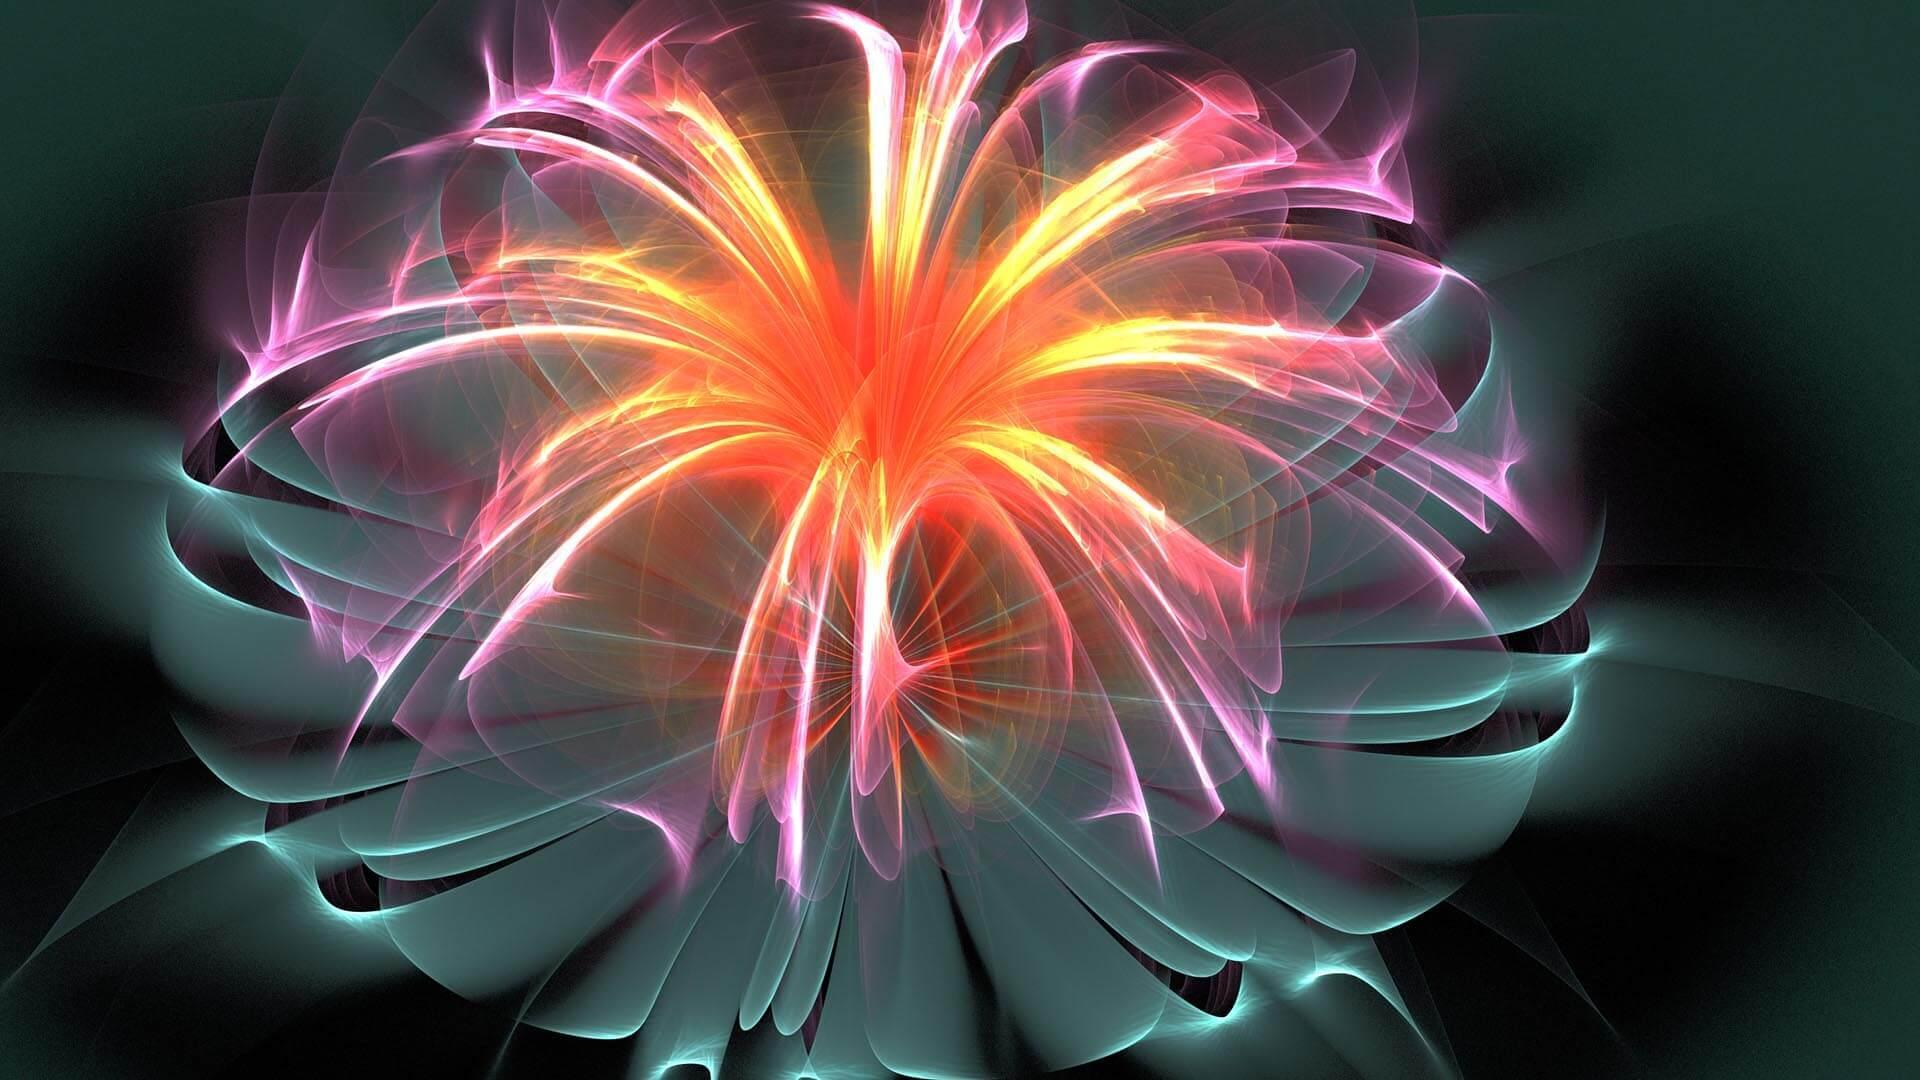 Glowing Wallpaper Hd For Android Apk Download